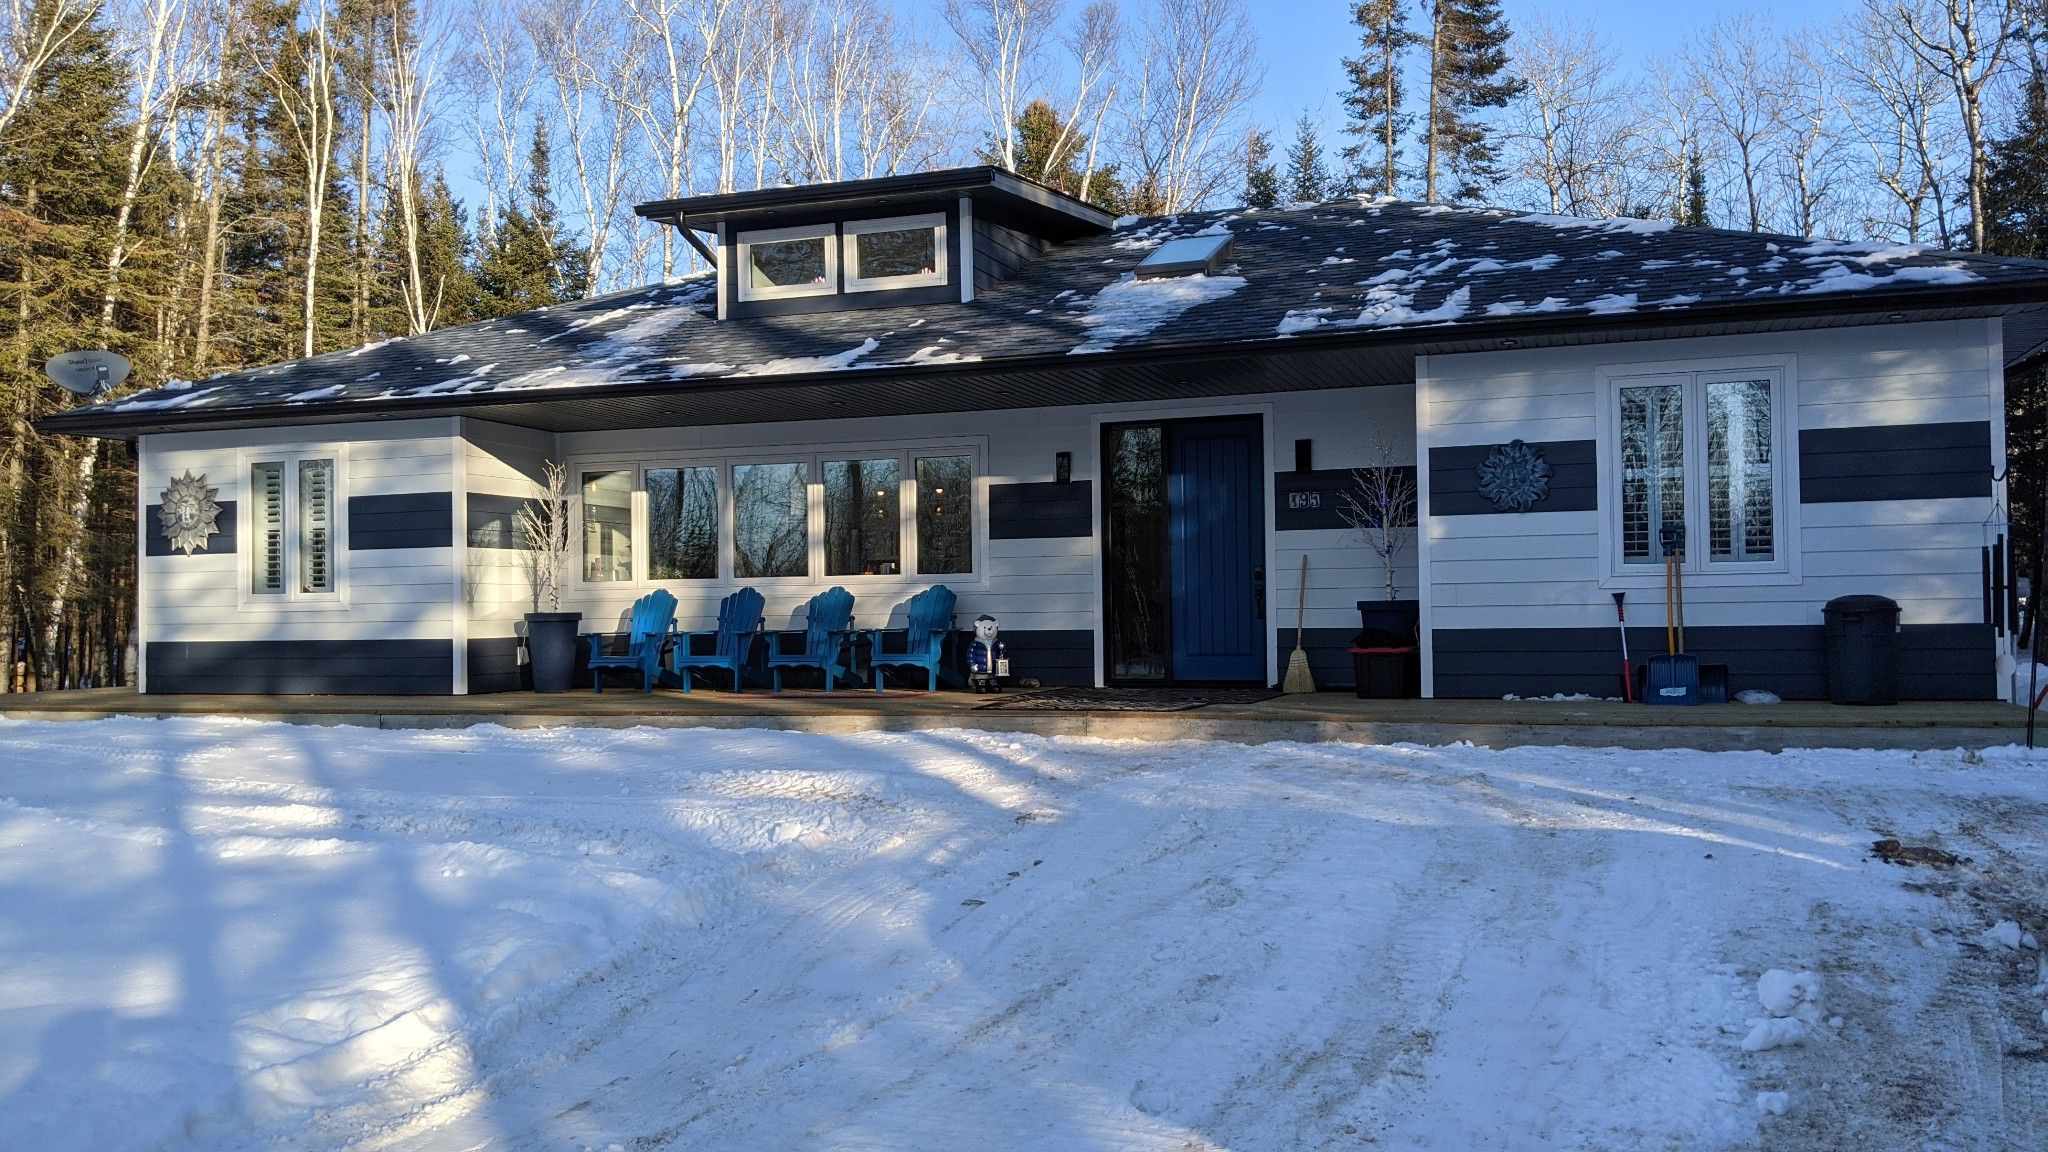 Main Photo: 195 Grand Pines Drive: Traverse Bay Single Family Detached for sale (R27)